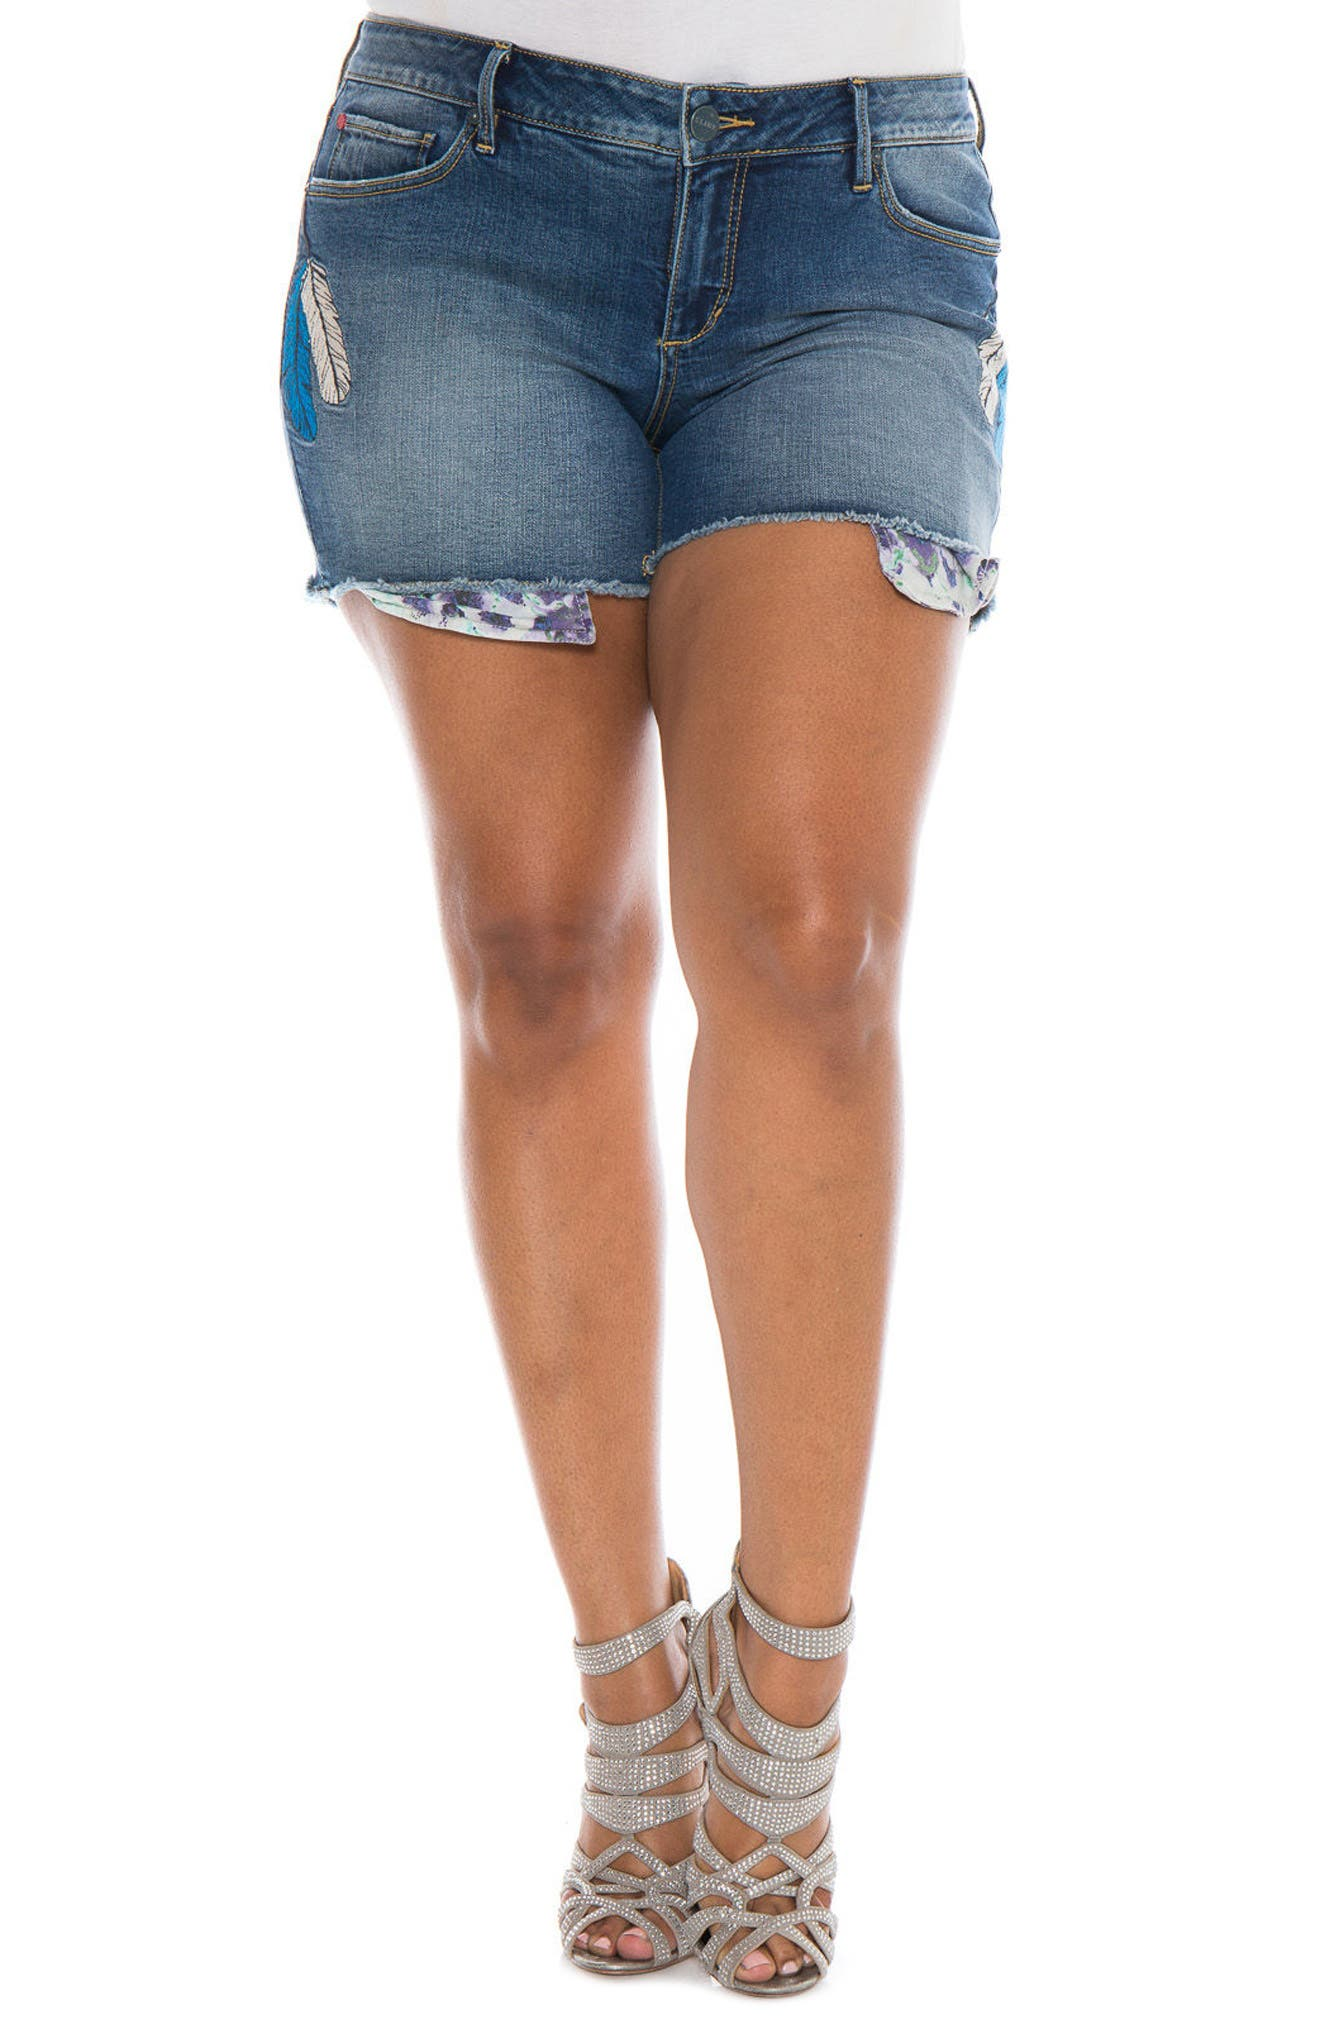 07241788bb4fd Slink Jeans Embroidered Cutoff Denim Shorts Plus Size